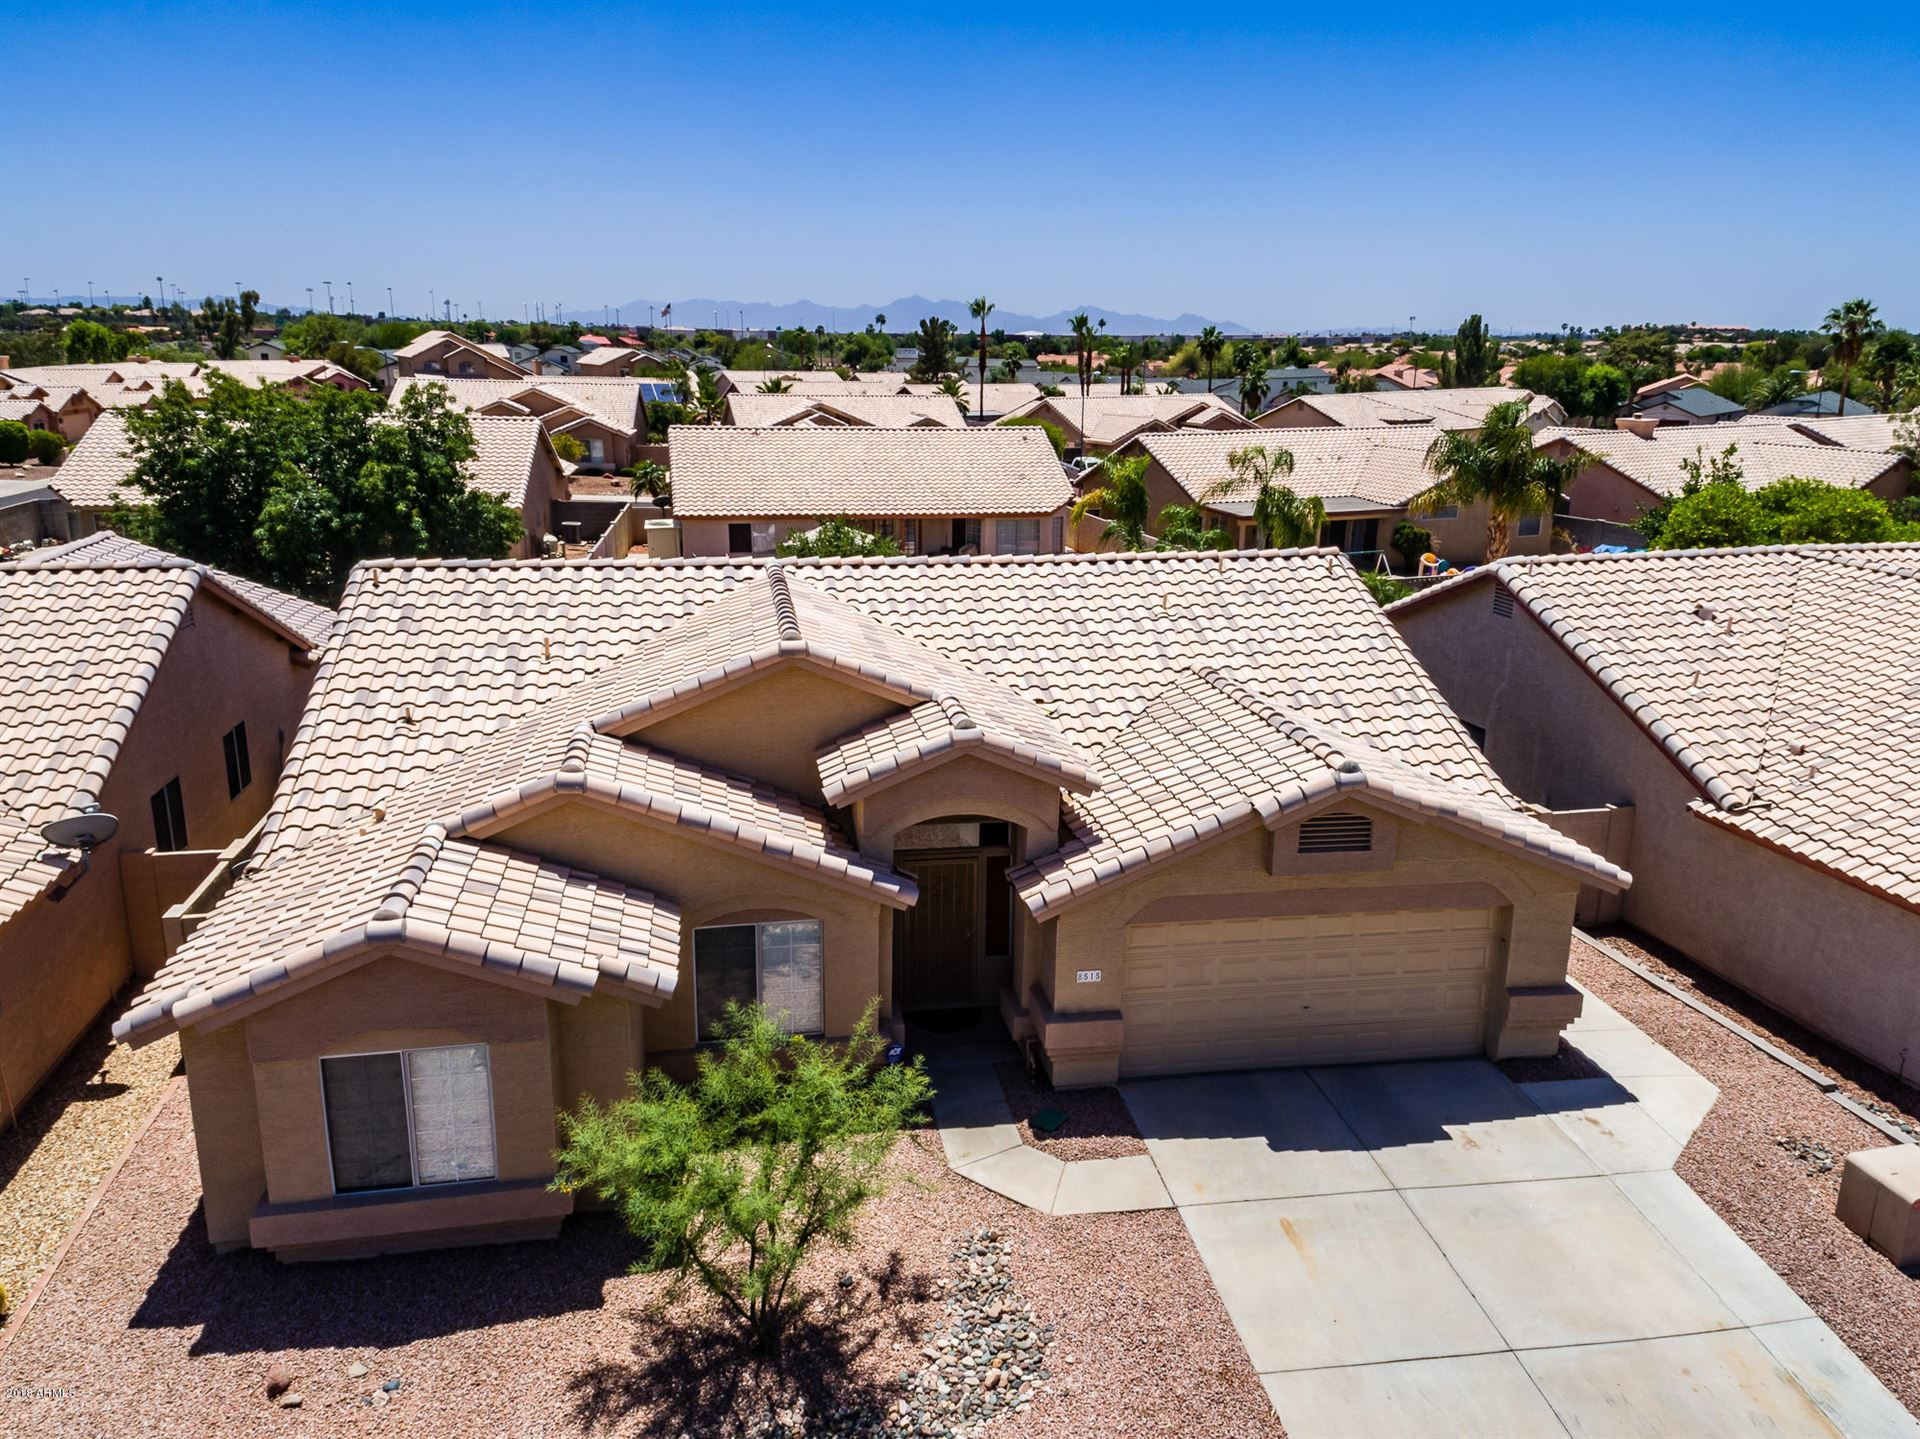 Photo of 8515 W ACAPULCO Lane, Peoria, AZ 85381 (MLS # 6200548)